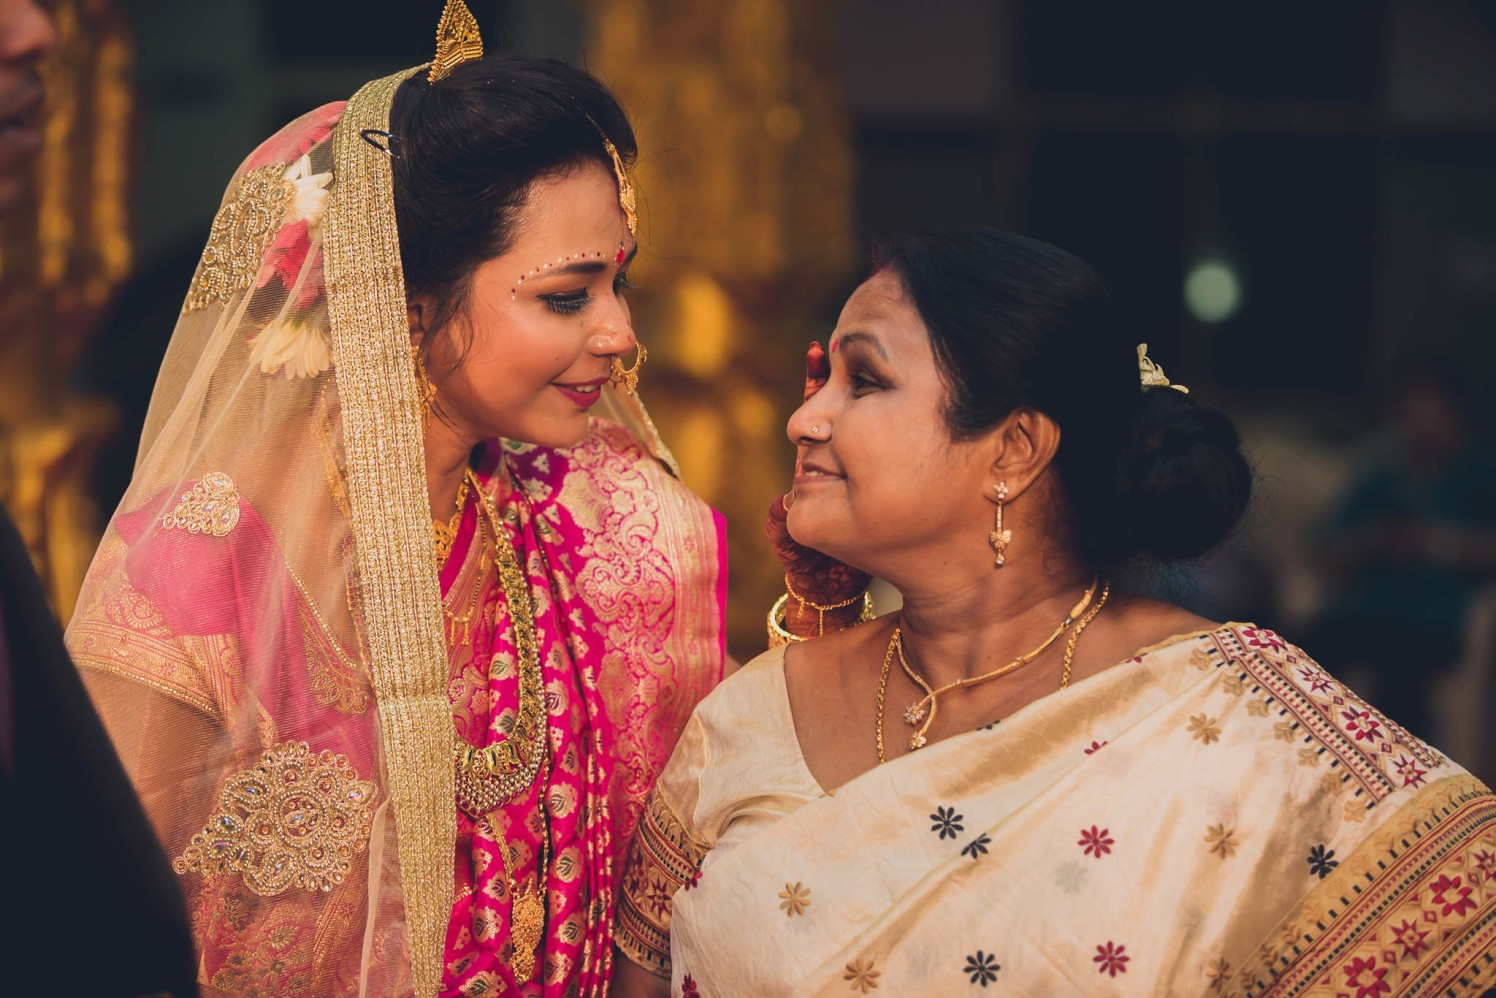 Mother and daughter! by Patrick Joseph Wedding-photography | Weddings Photos & Ideas